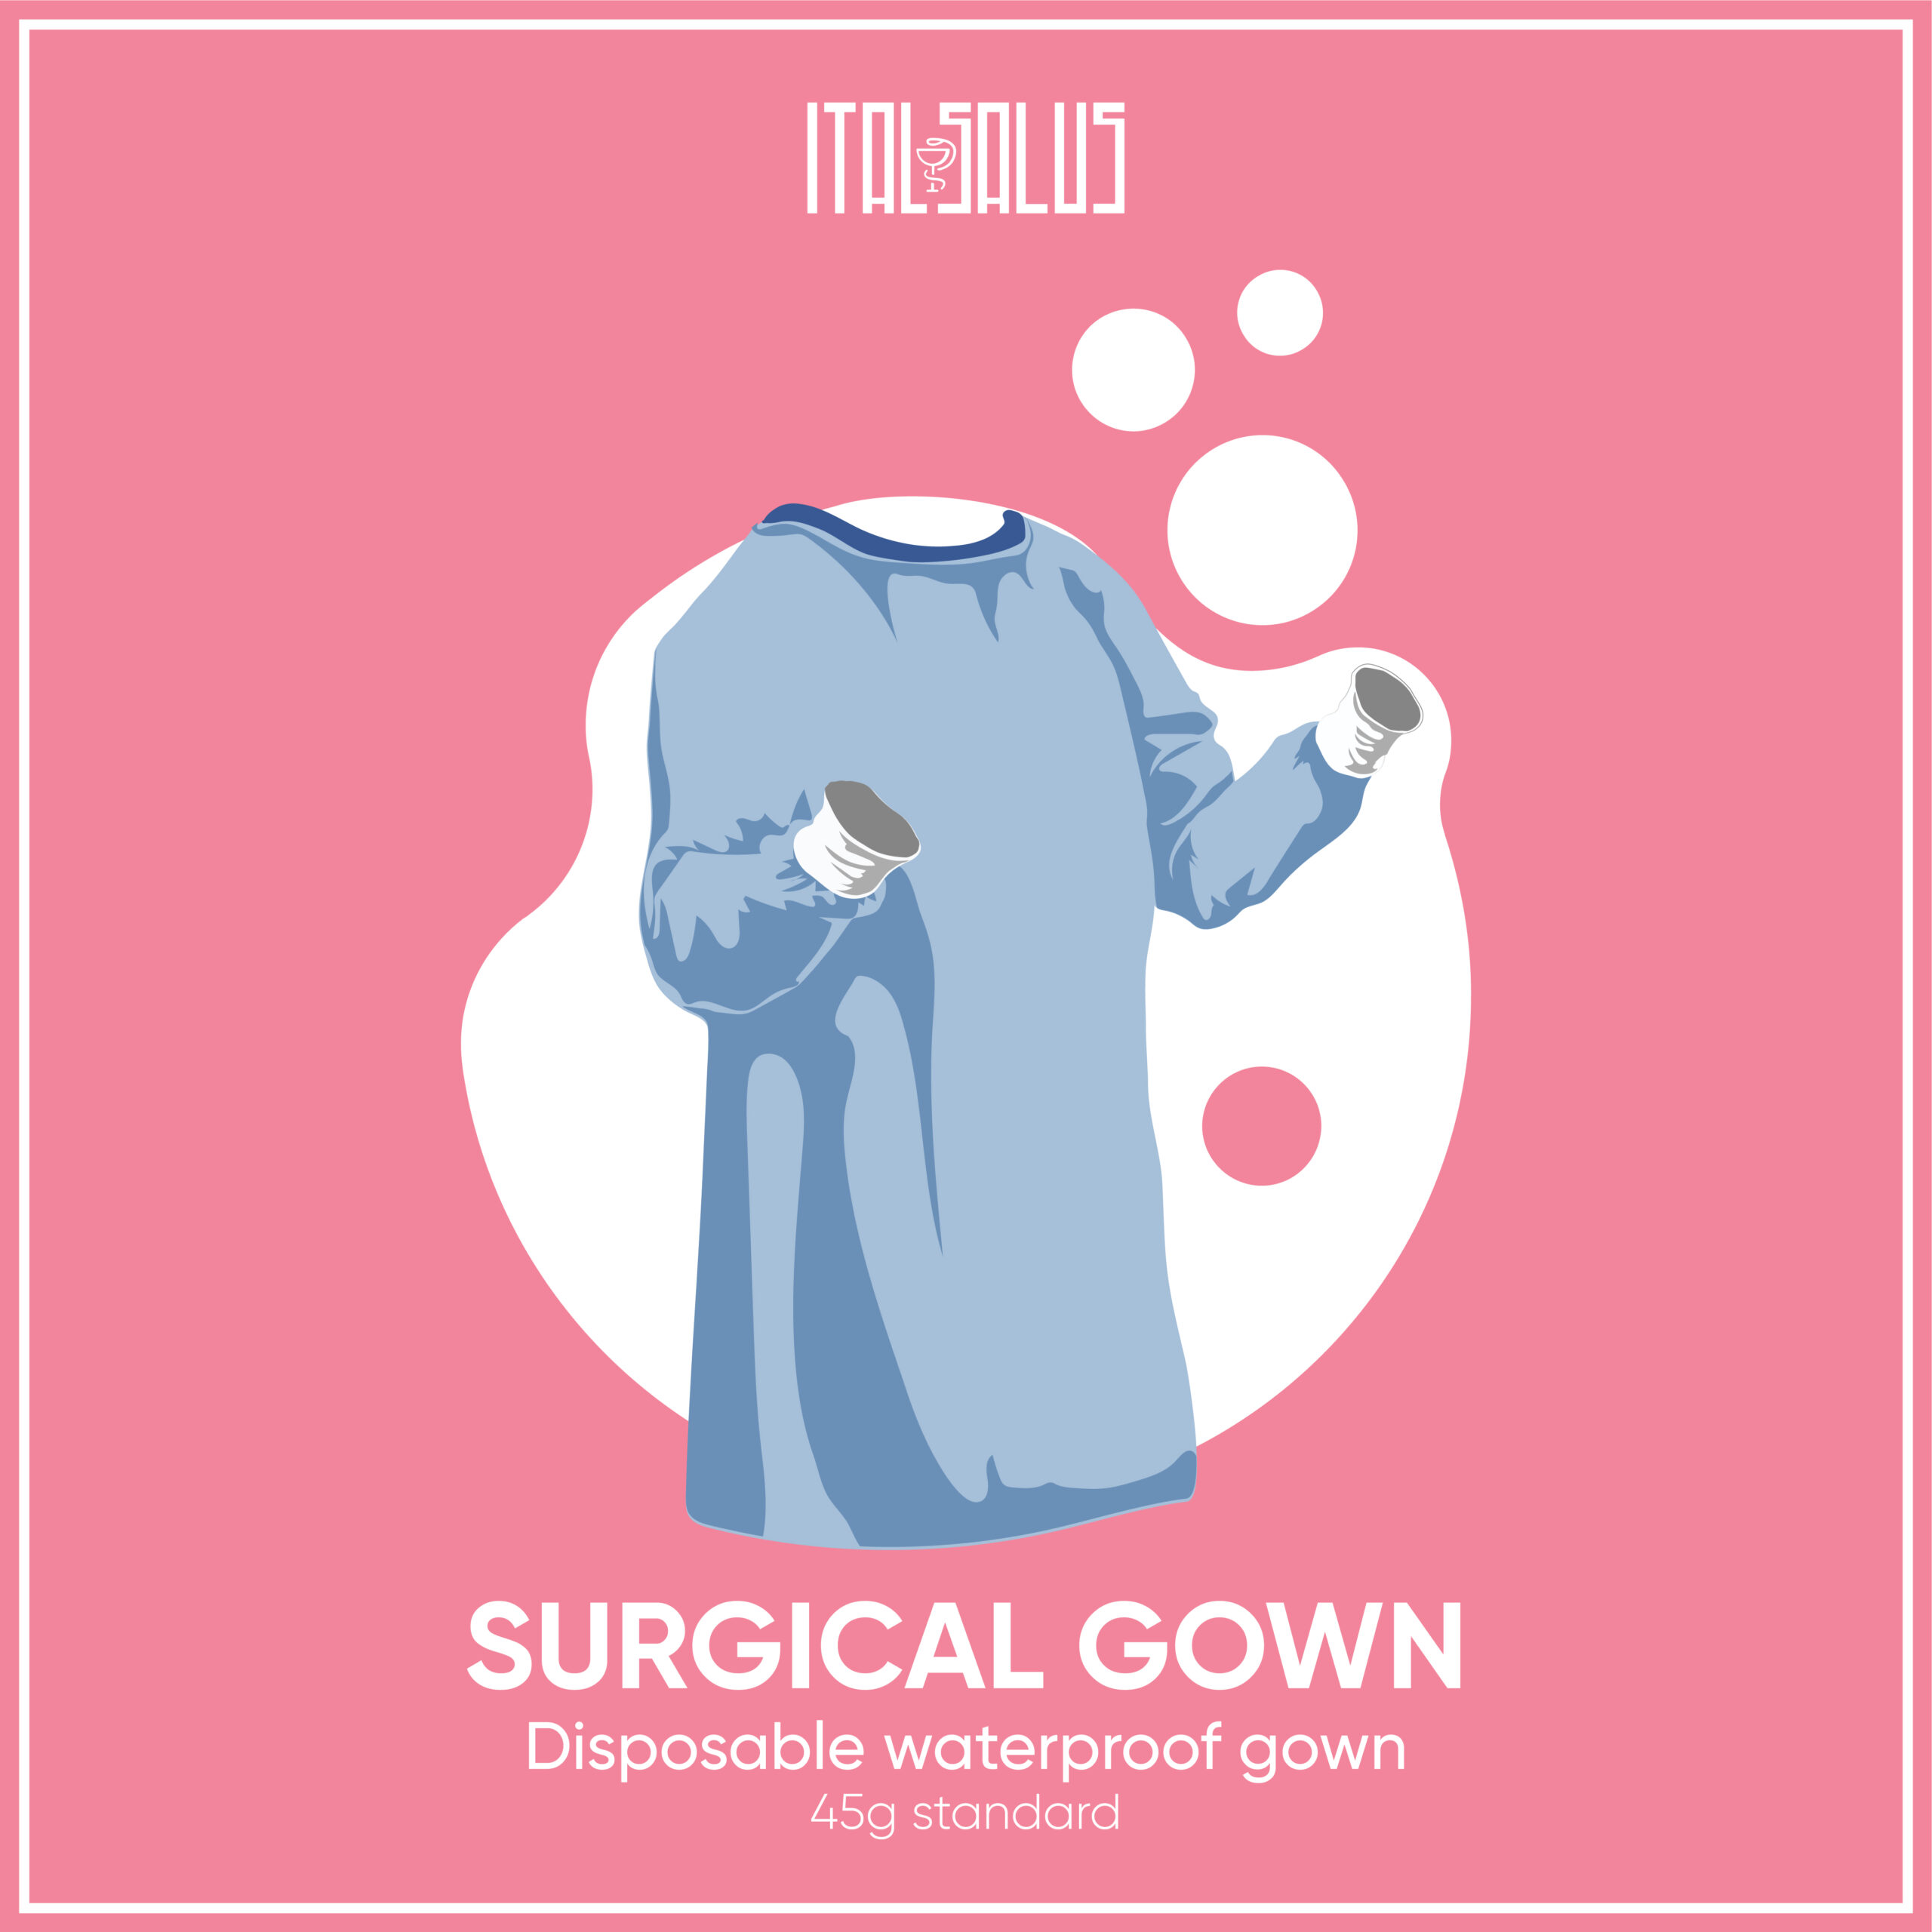 surgical gown draw 45g